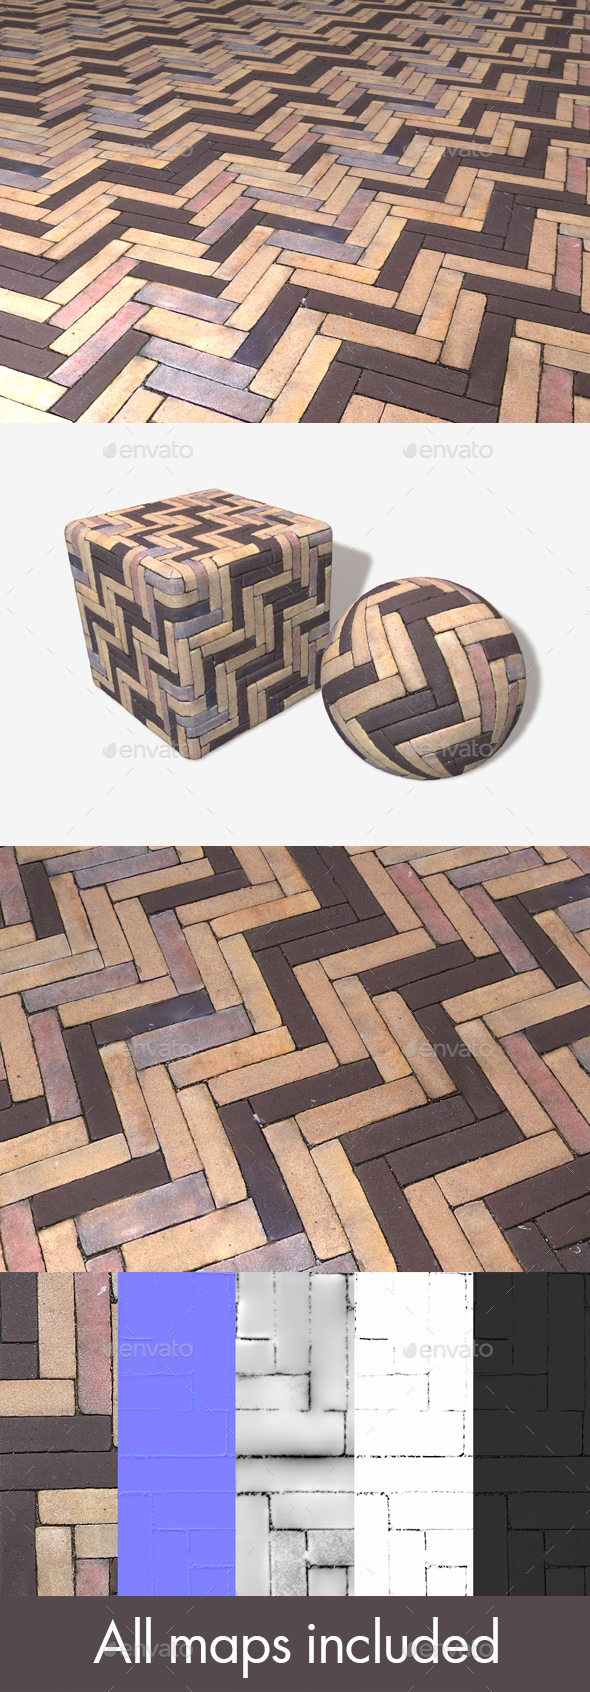 Zigzag Pavement Seamless Texture - 3DOcean Item for Sale